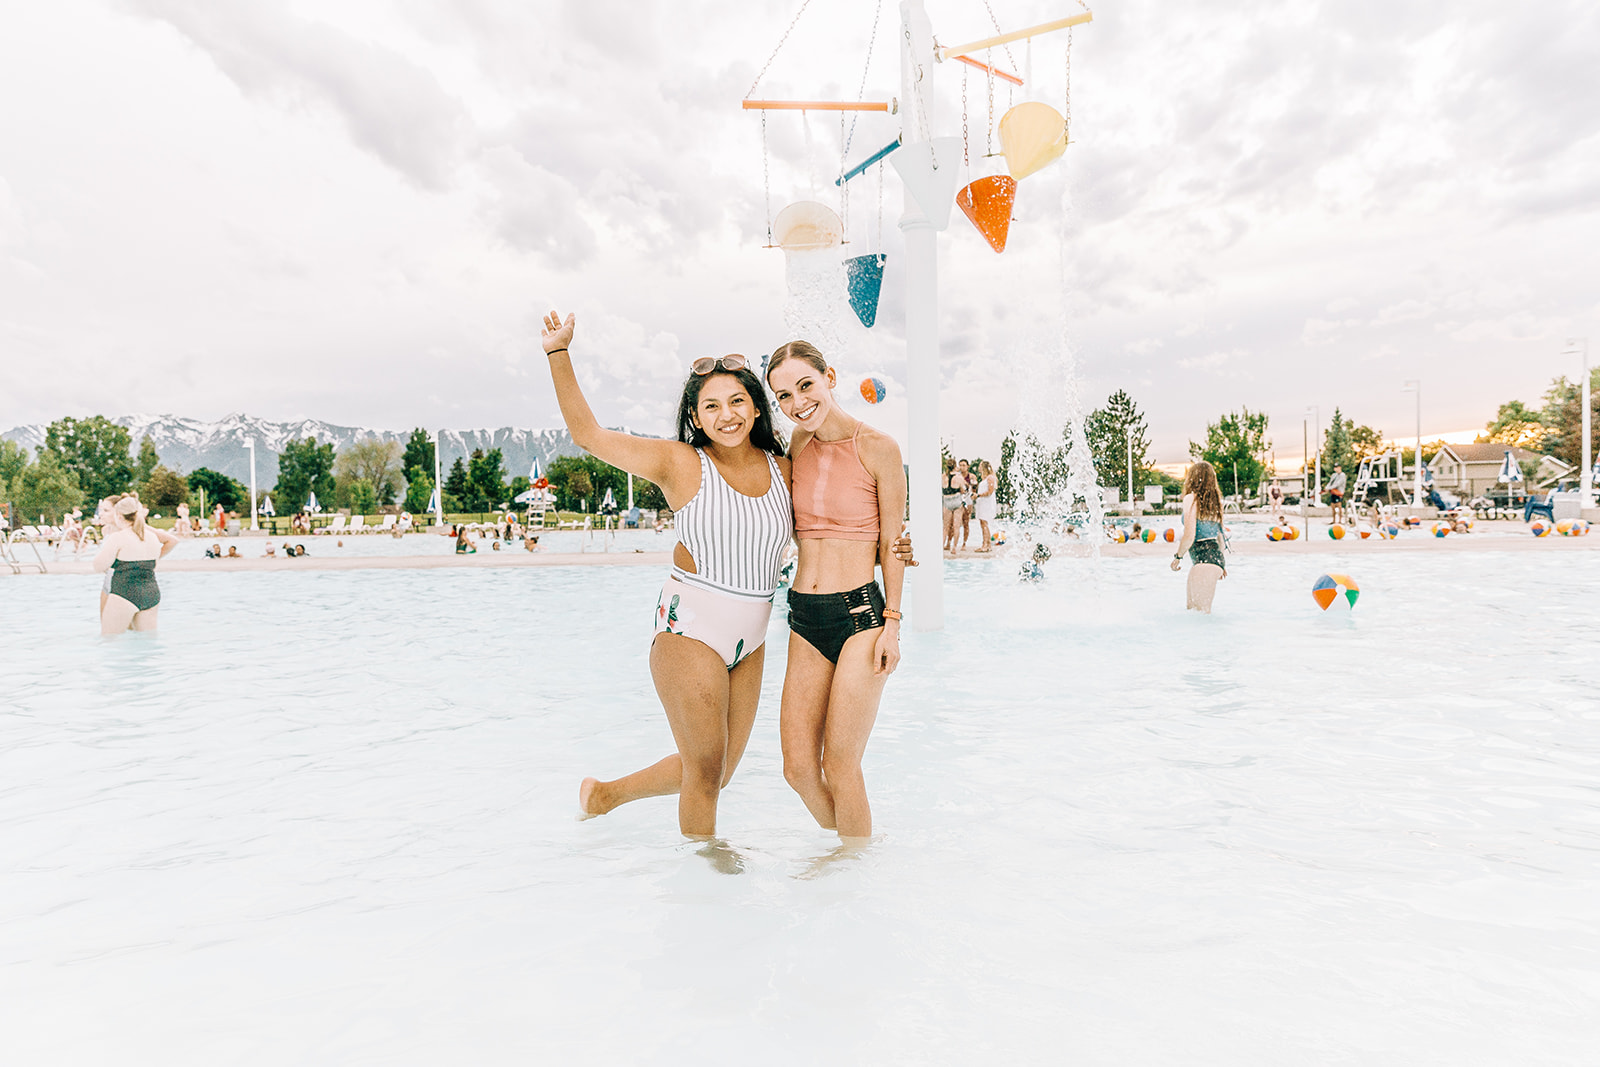 Epic dance party pictures by bella alder photography at commercial event with nani swimwear in logan utah commercial photographer #bellaalderphoto #poolparty #professionalevent #eventinspo #poolpartyinspo #commercialevent #commercialphotography